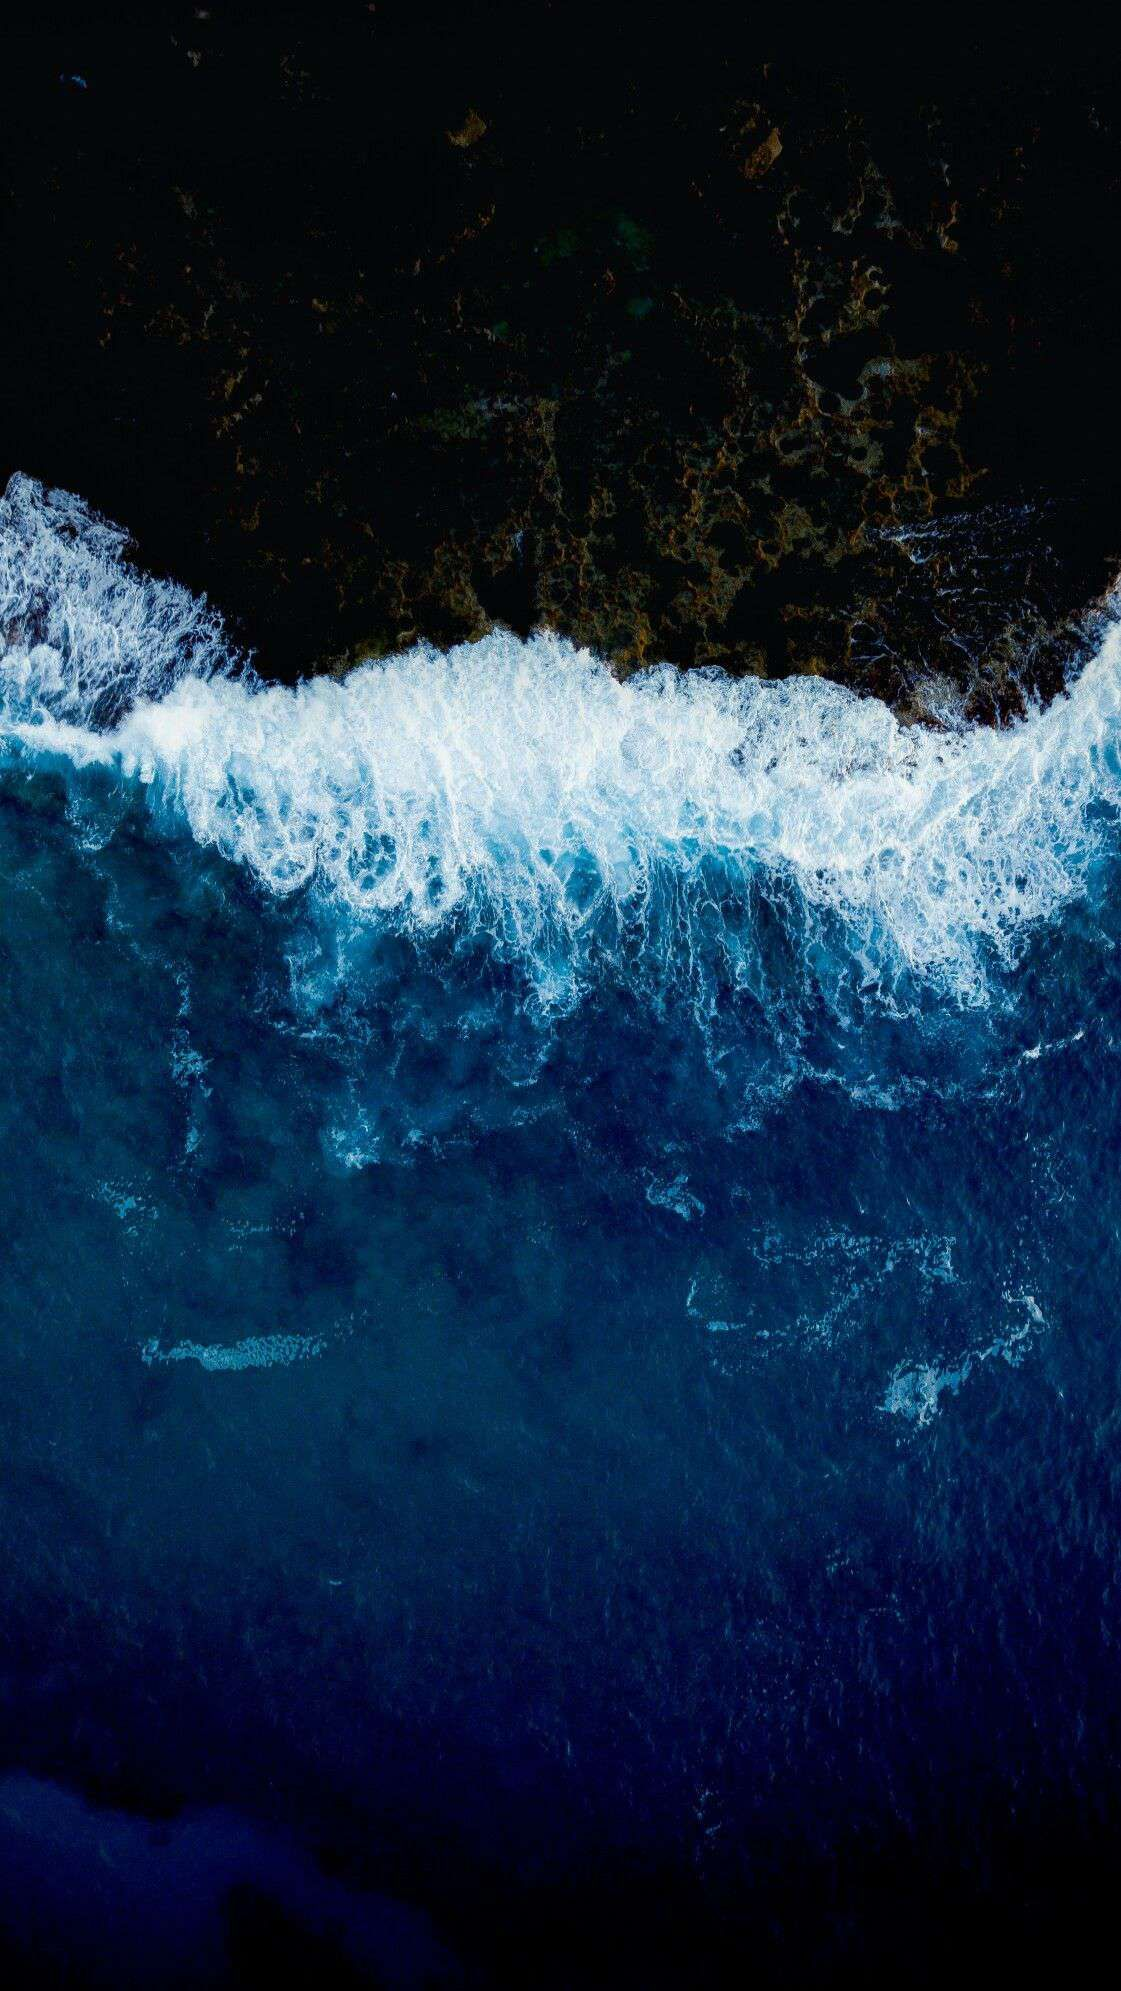 Blue Water Nature Ocean iPhone Wallpaper from iphoneswallpapers.com